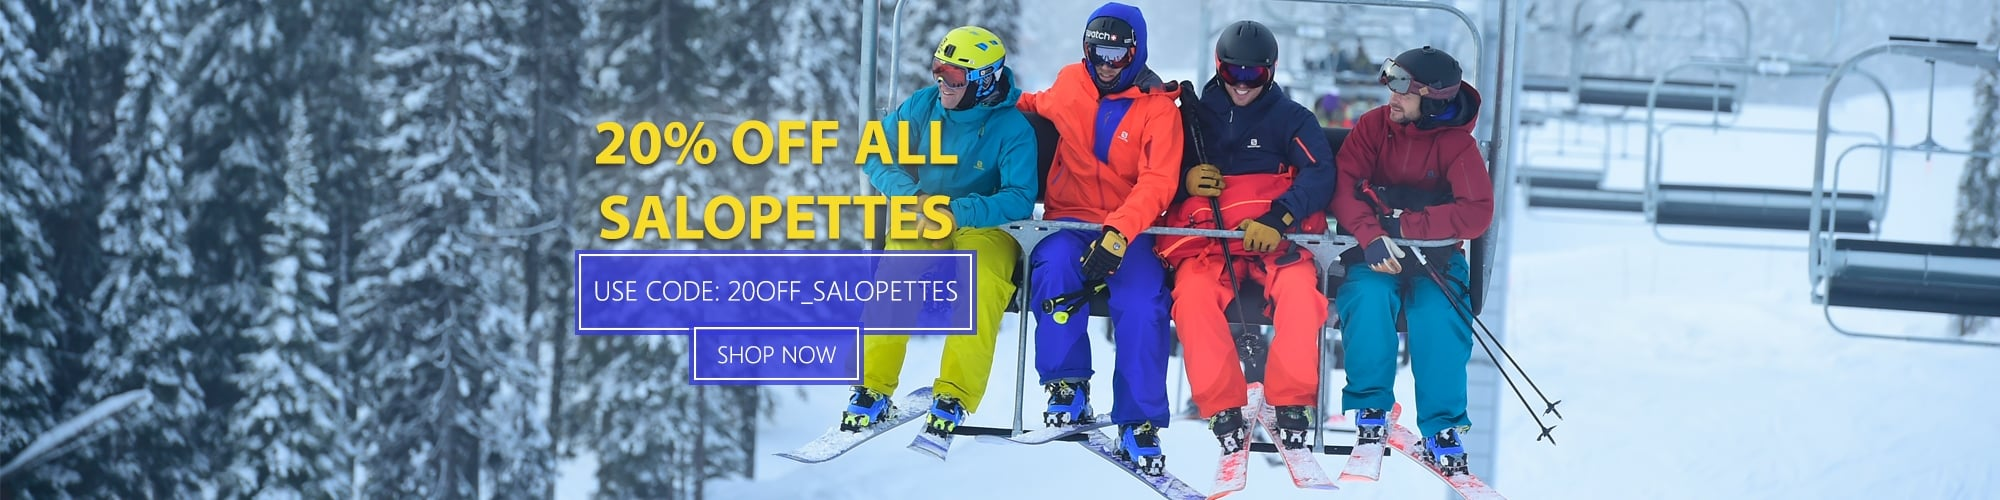 20% Off All Salopettes